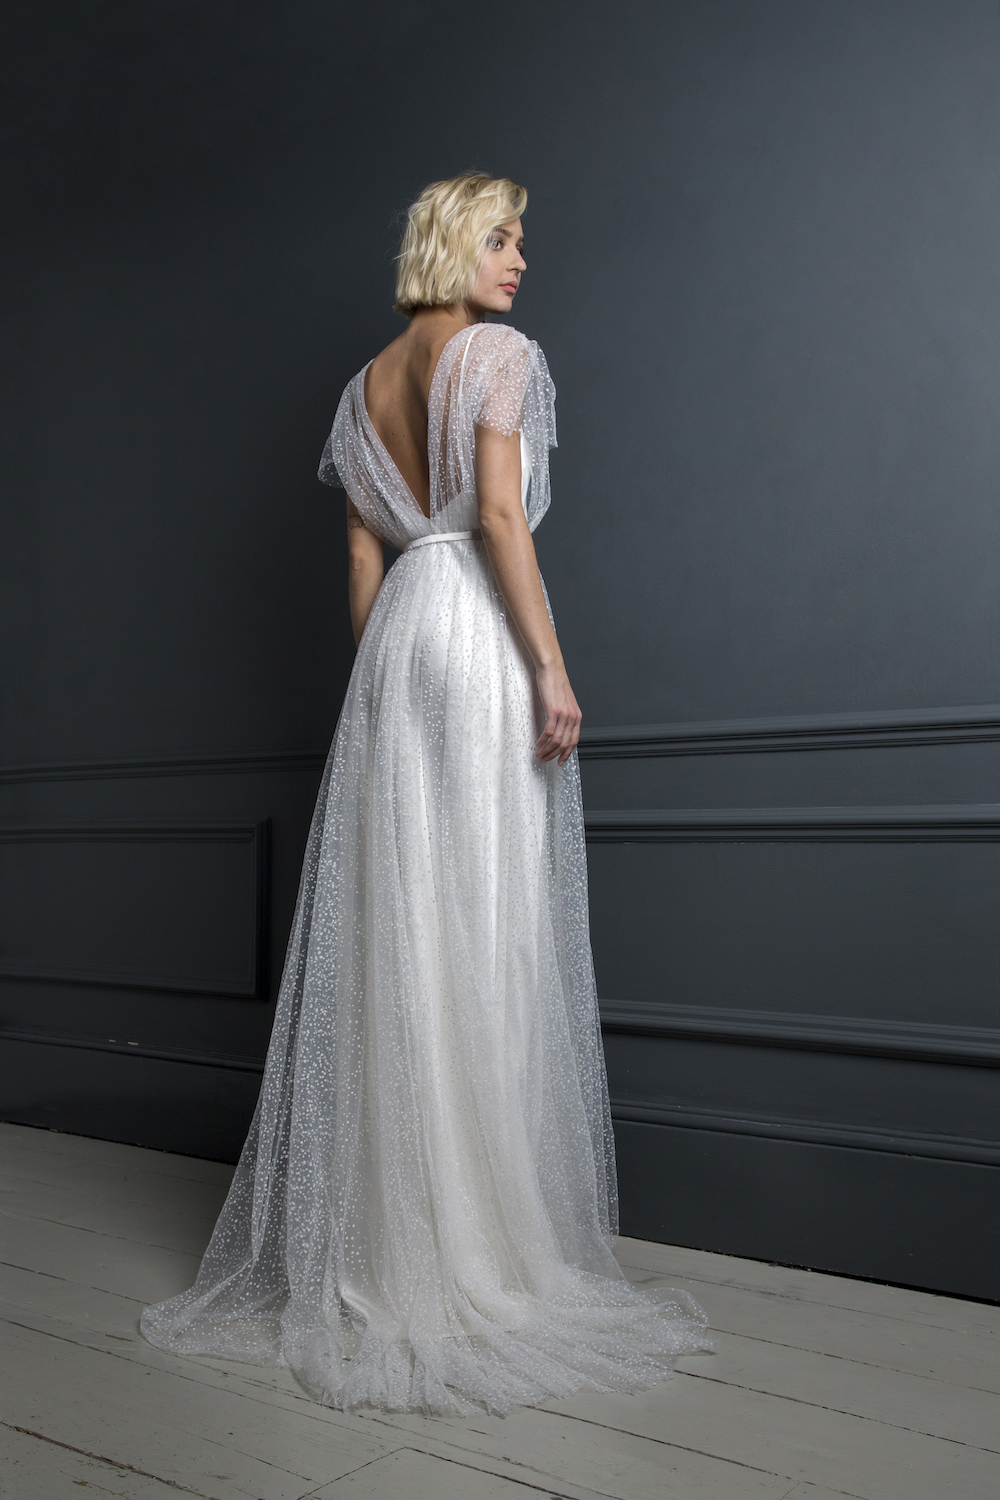 ZIGGY DRESS | WEDDING DRESS BY HALFPENNY LONDON